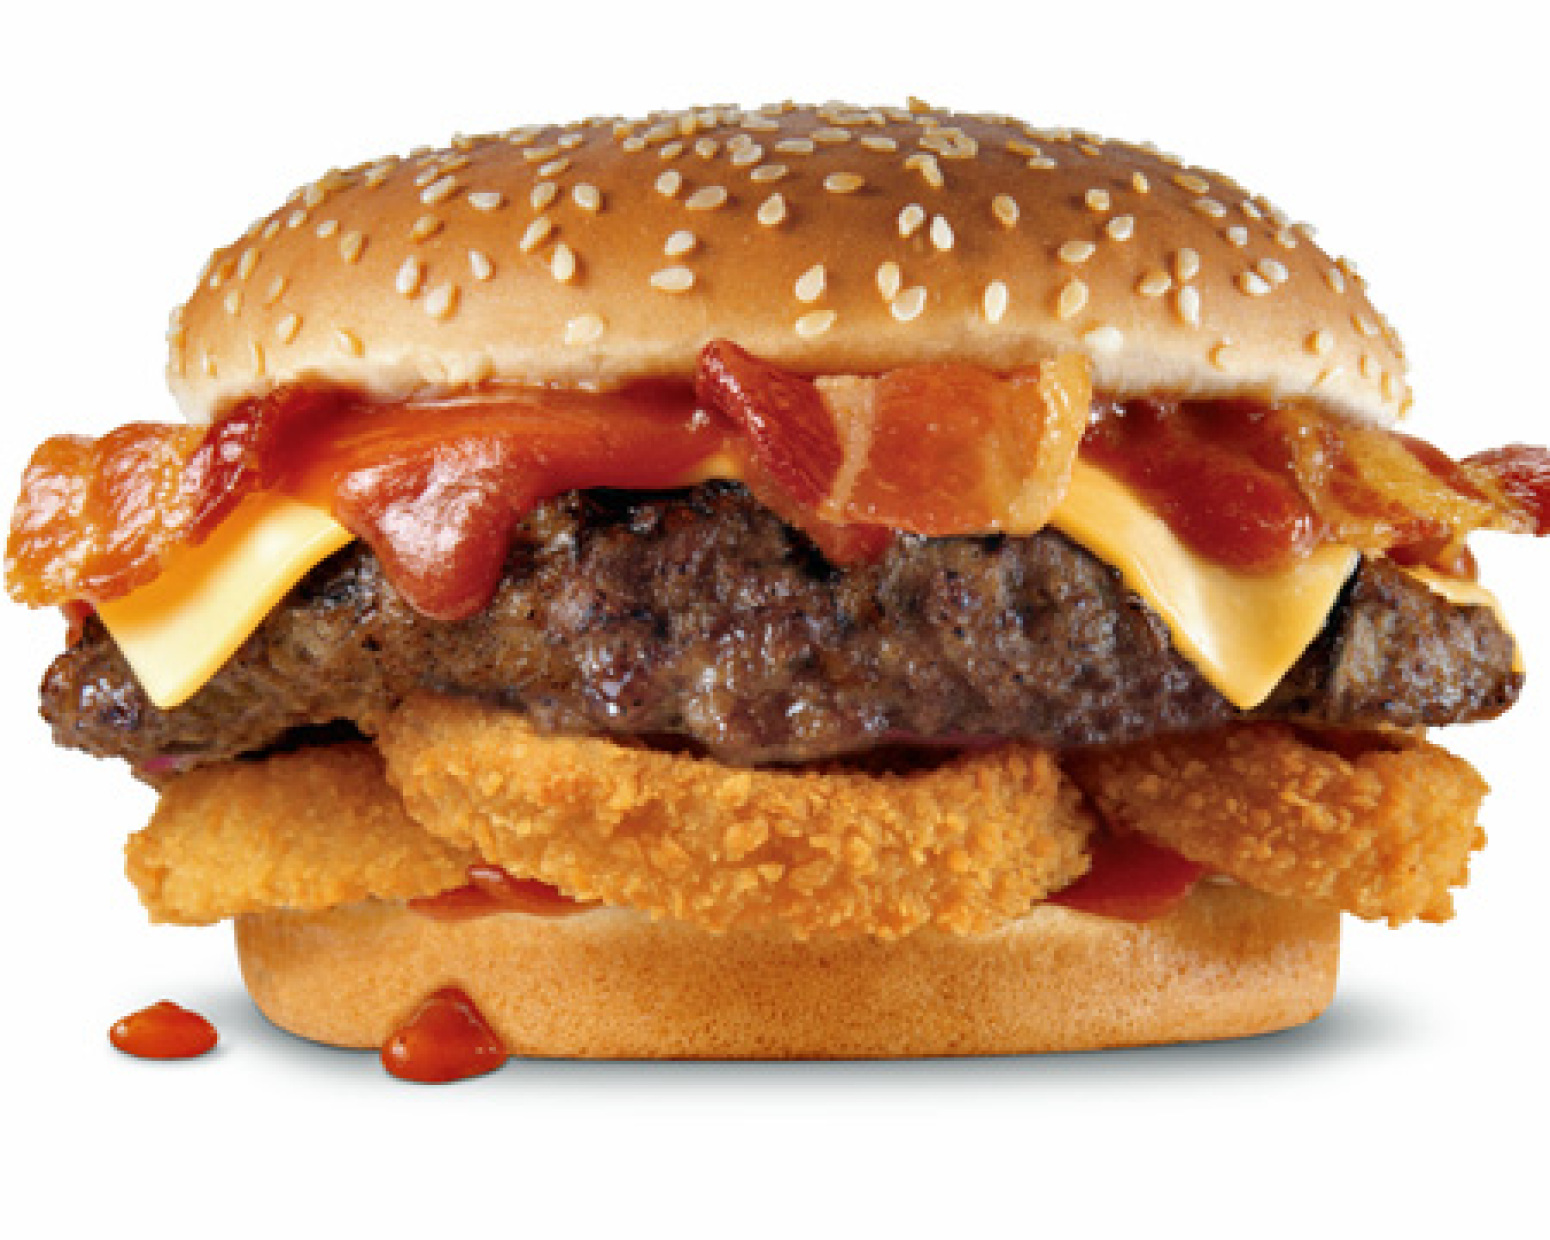 Carl's Jr. Western Bacon Cheeseburger Recipe 2 | Just A ...